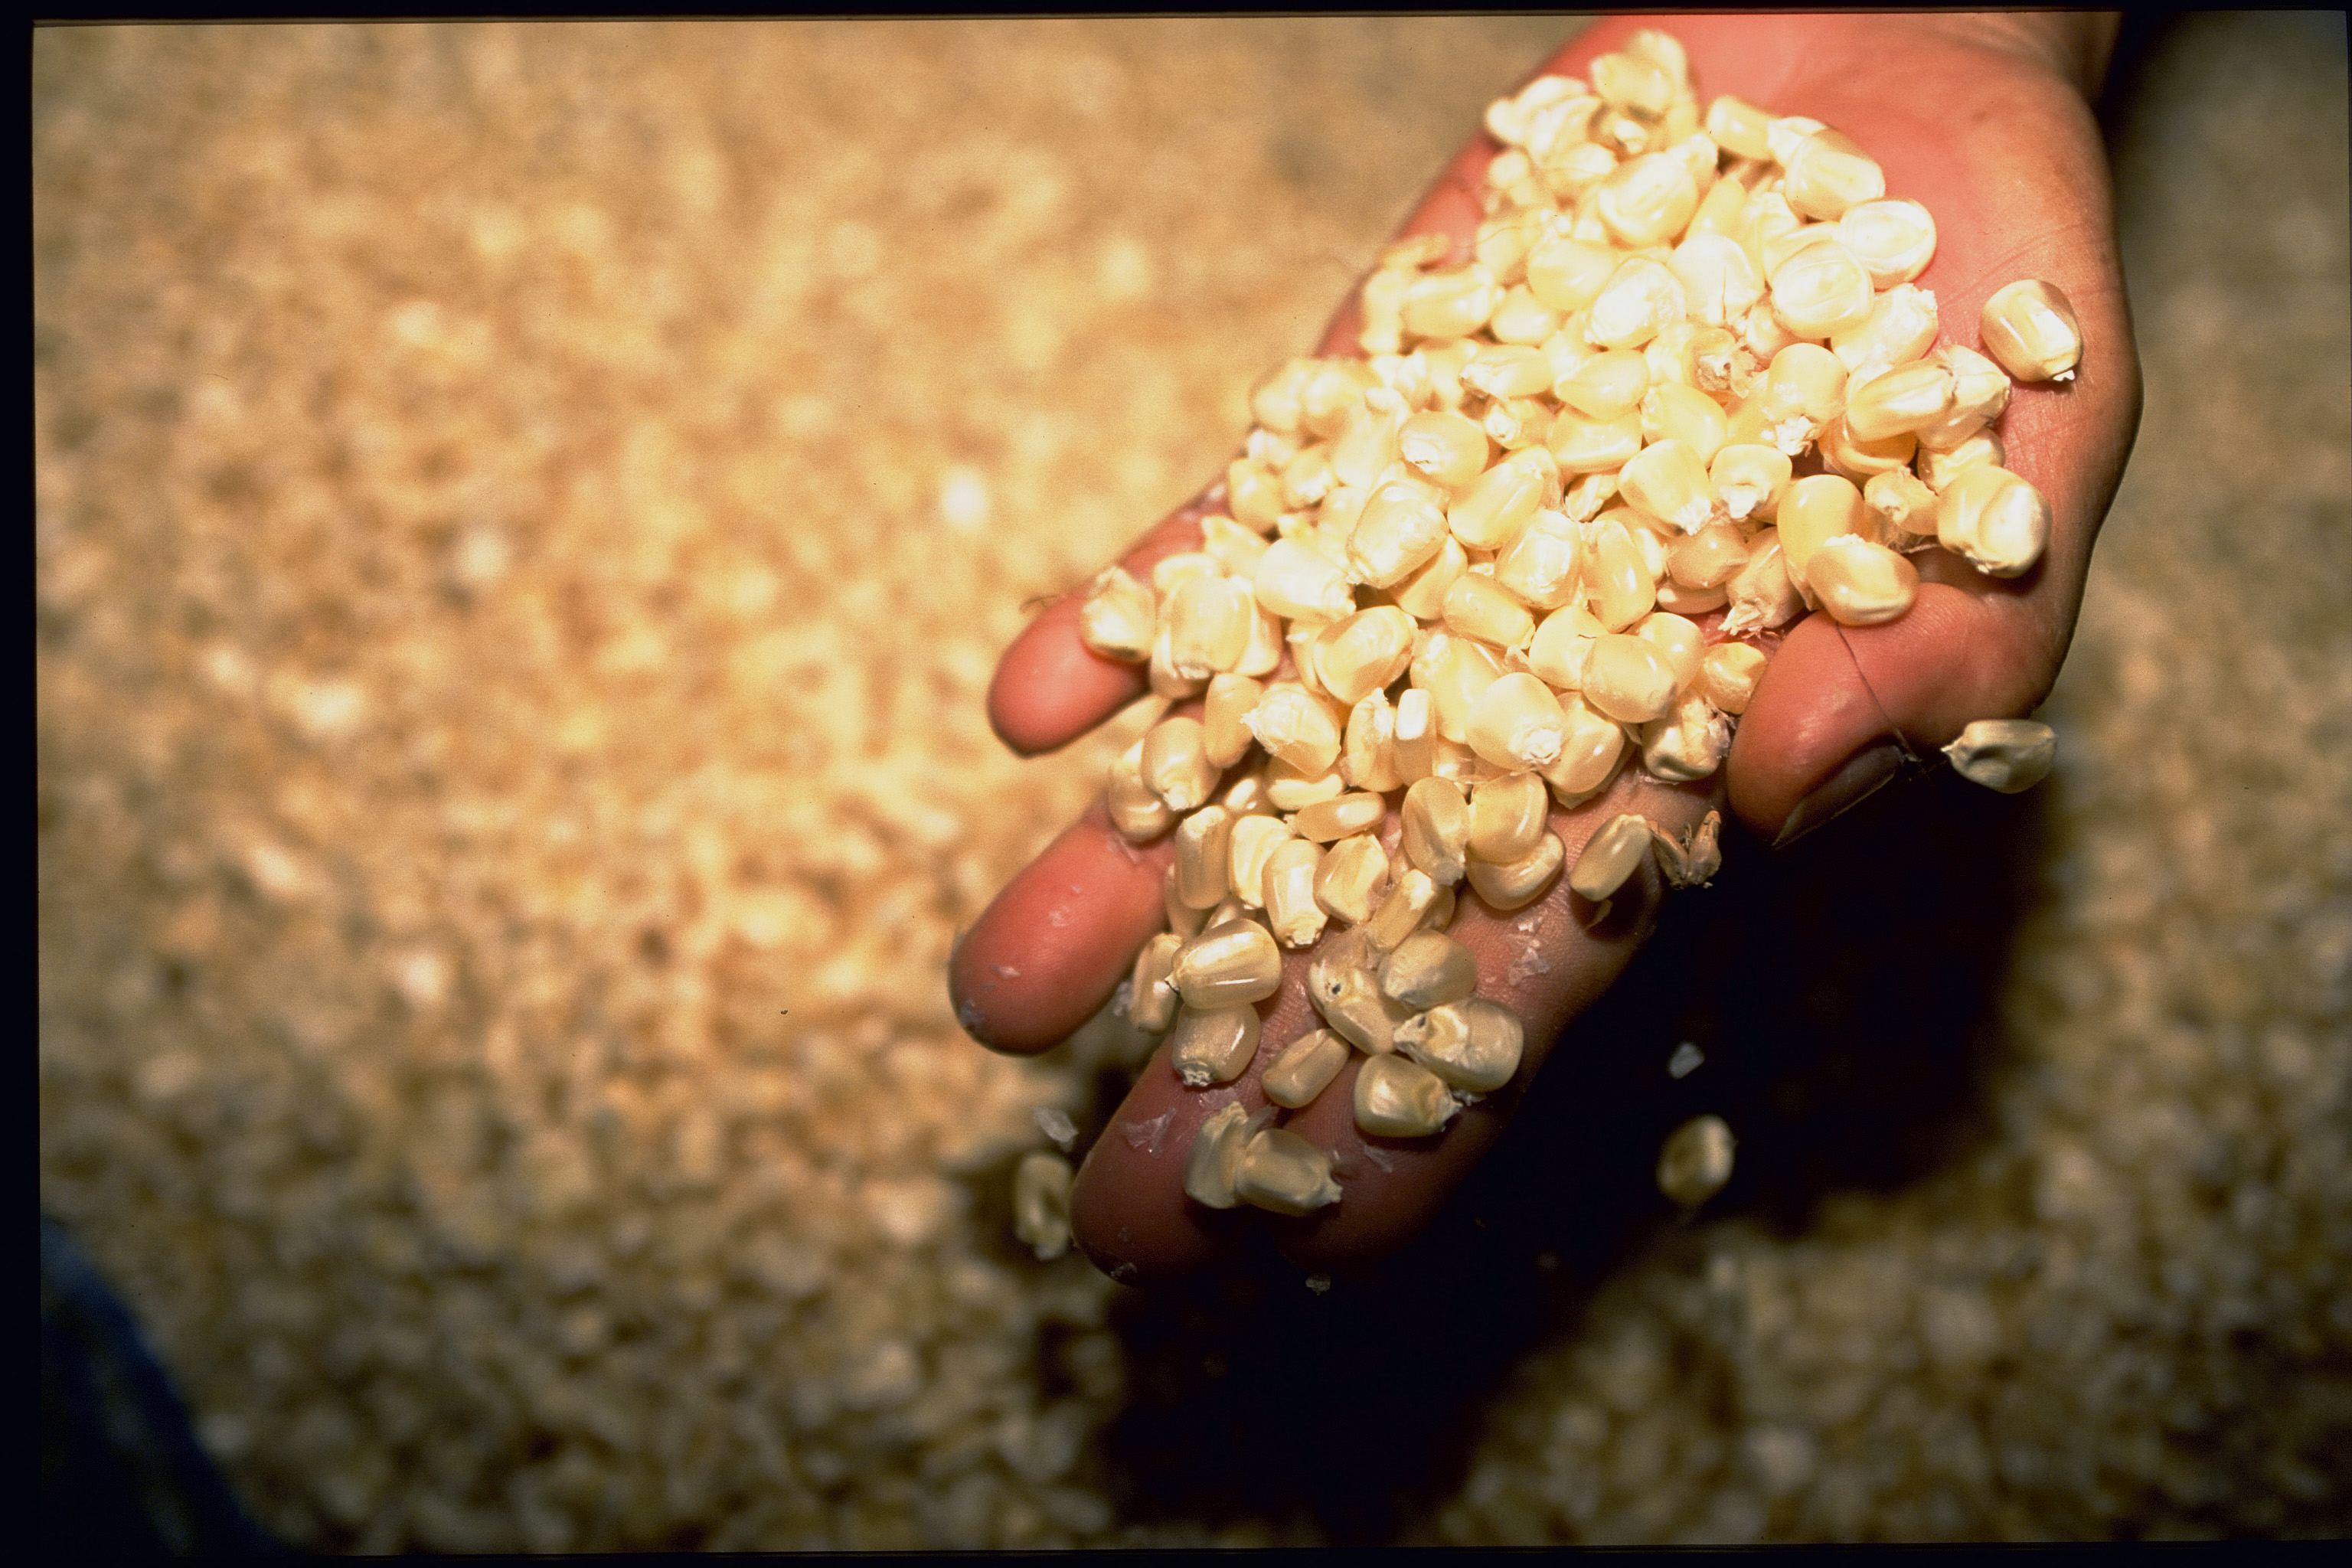 Food security can be increased using improved varieties of corn which produce more tonnes per hectare. Photo by David Haigh for AusAID